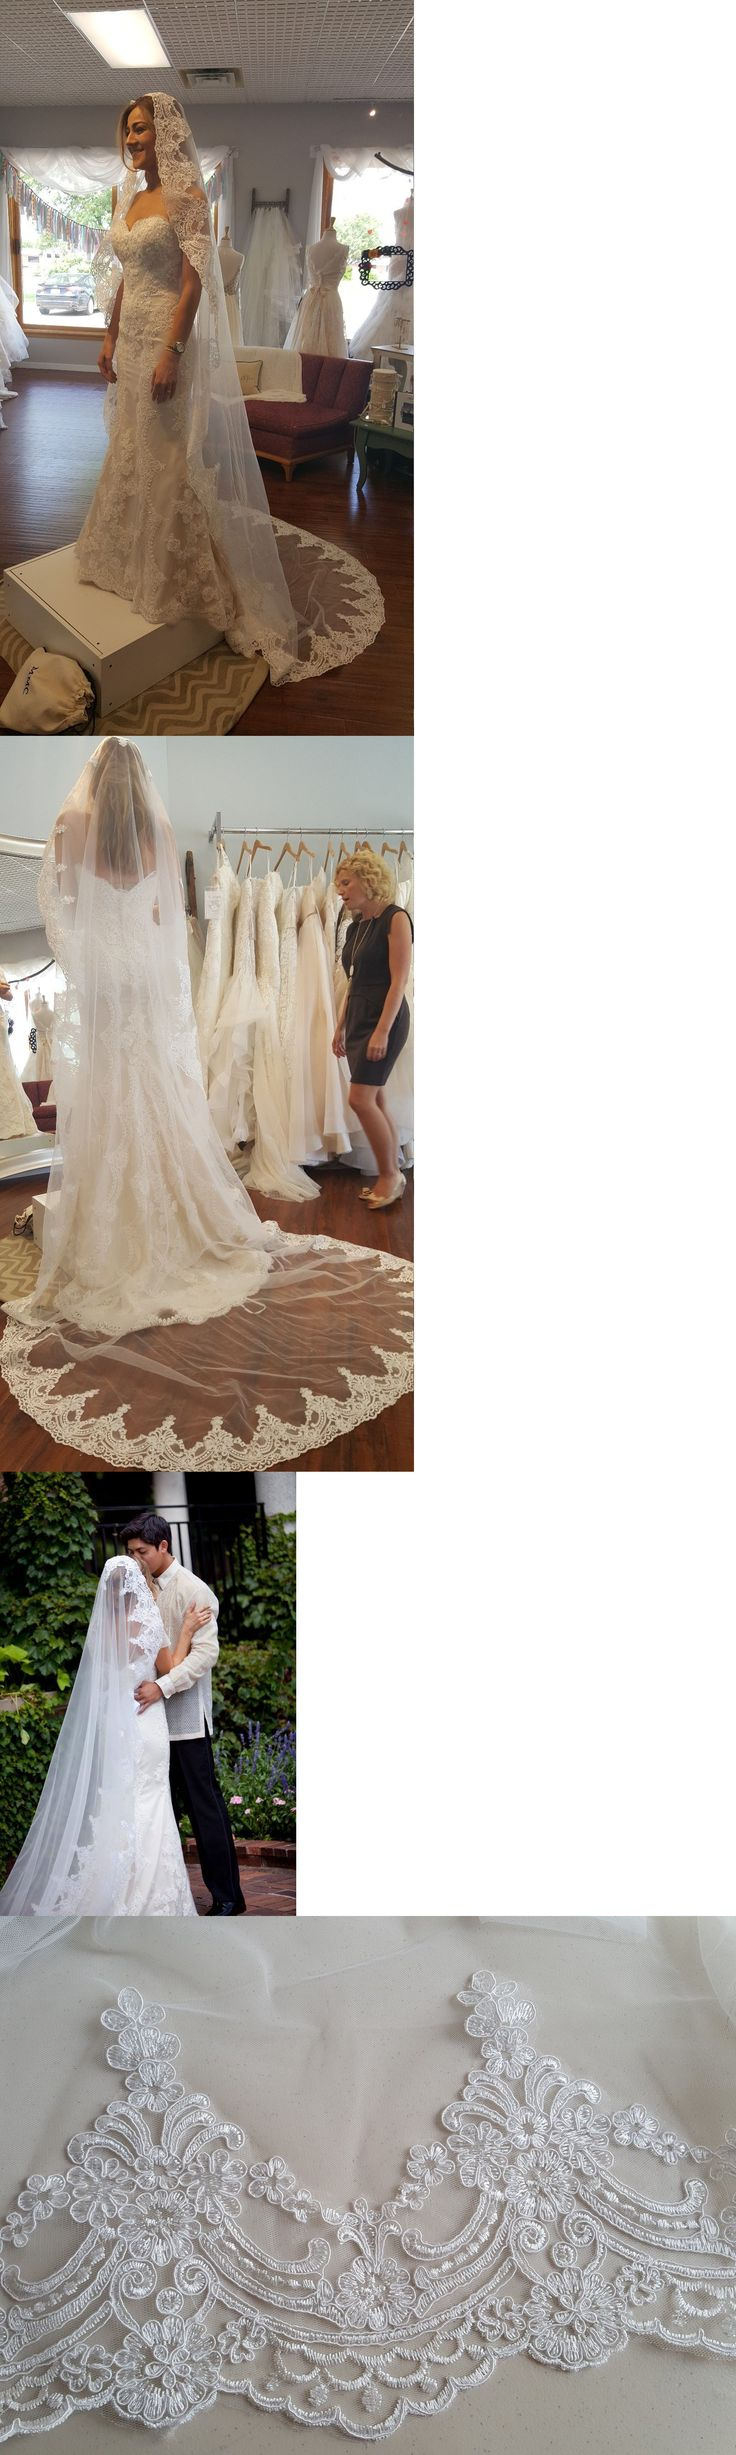 Bridal Accessories: Bridal Mantilla Cathedral Lace Veil With Comb /White Or Light Ivory BUY IT NOW ONLY: $129.99